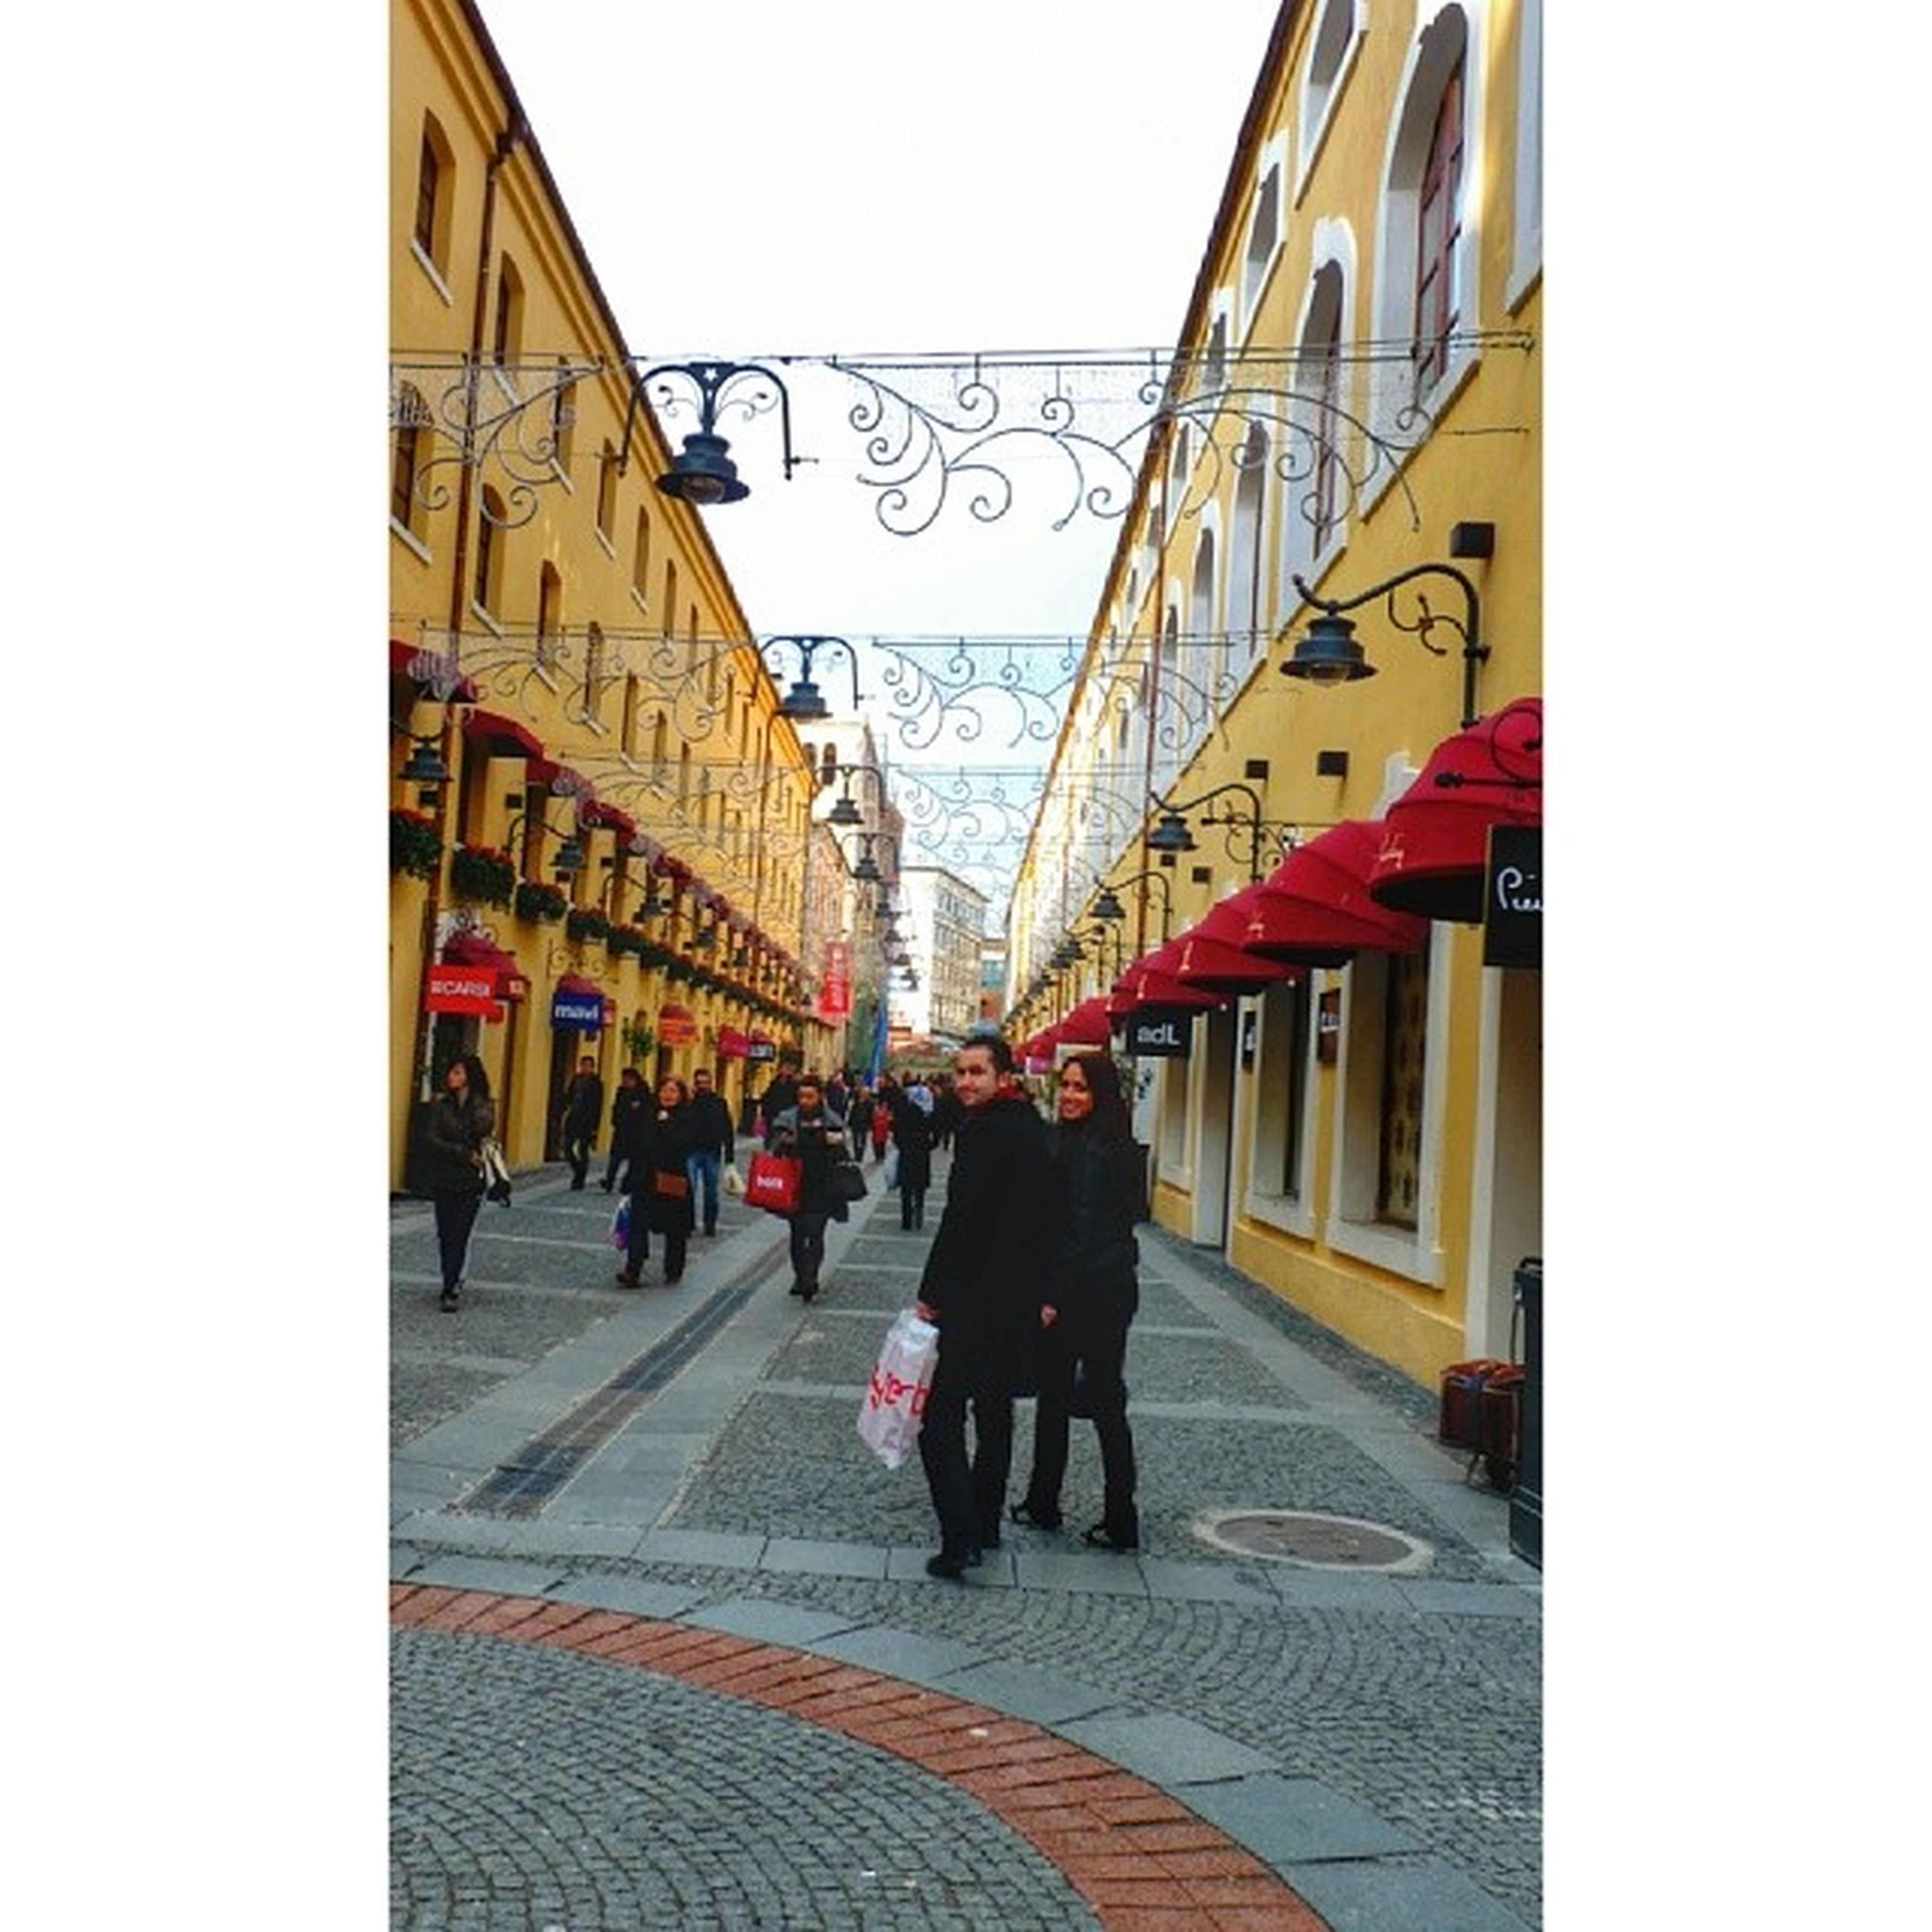 architecture, built structure, building exterior, men, walking, person, clear sky, lifestyles, city, city life, street, large group of people, leisure activity, day, full length, medium group of people, transportation, group of people, building